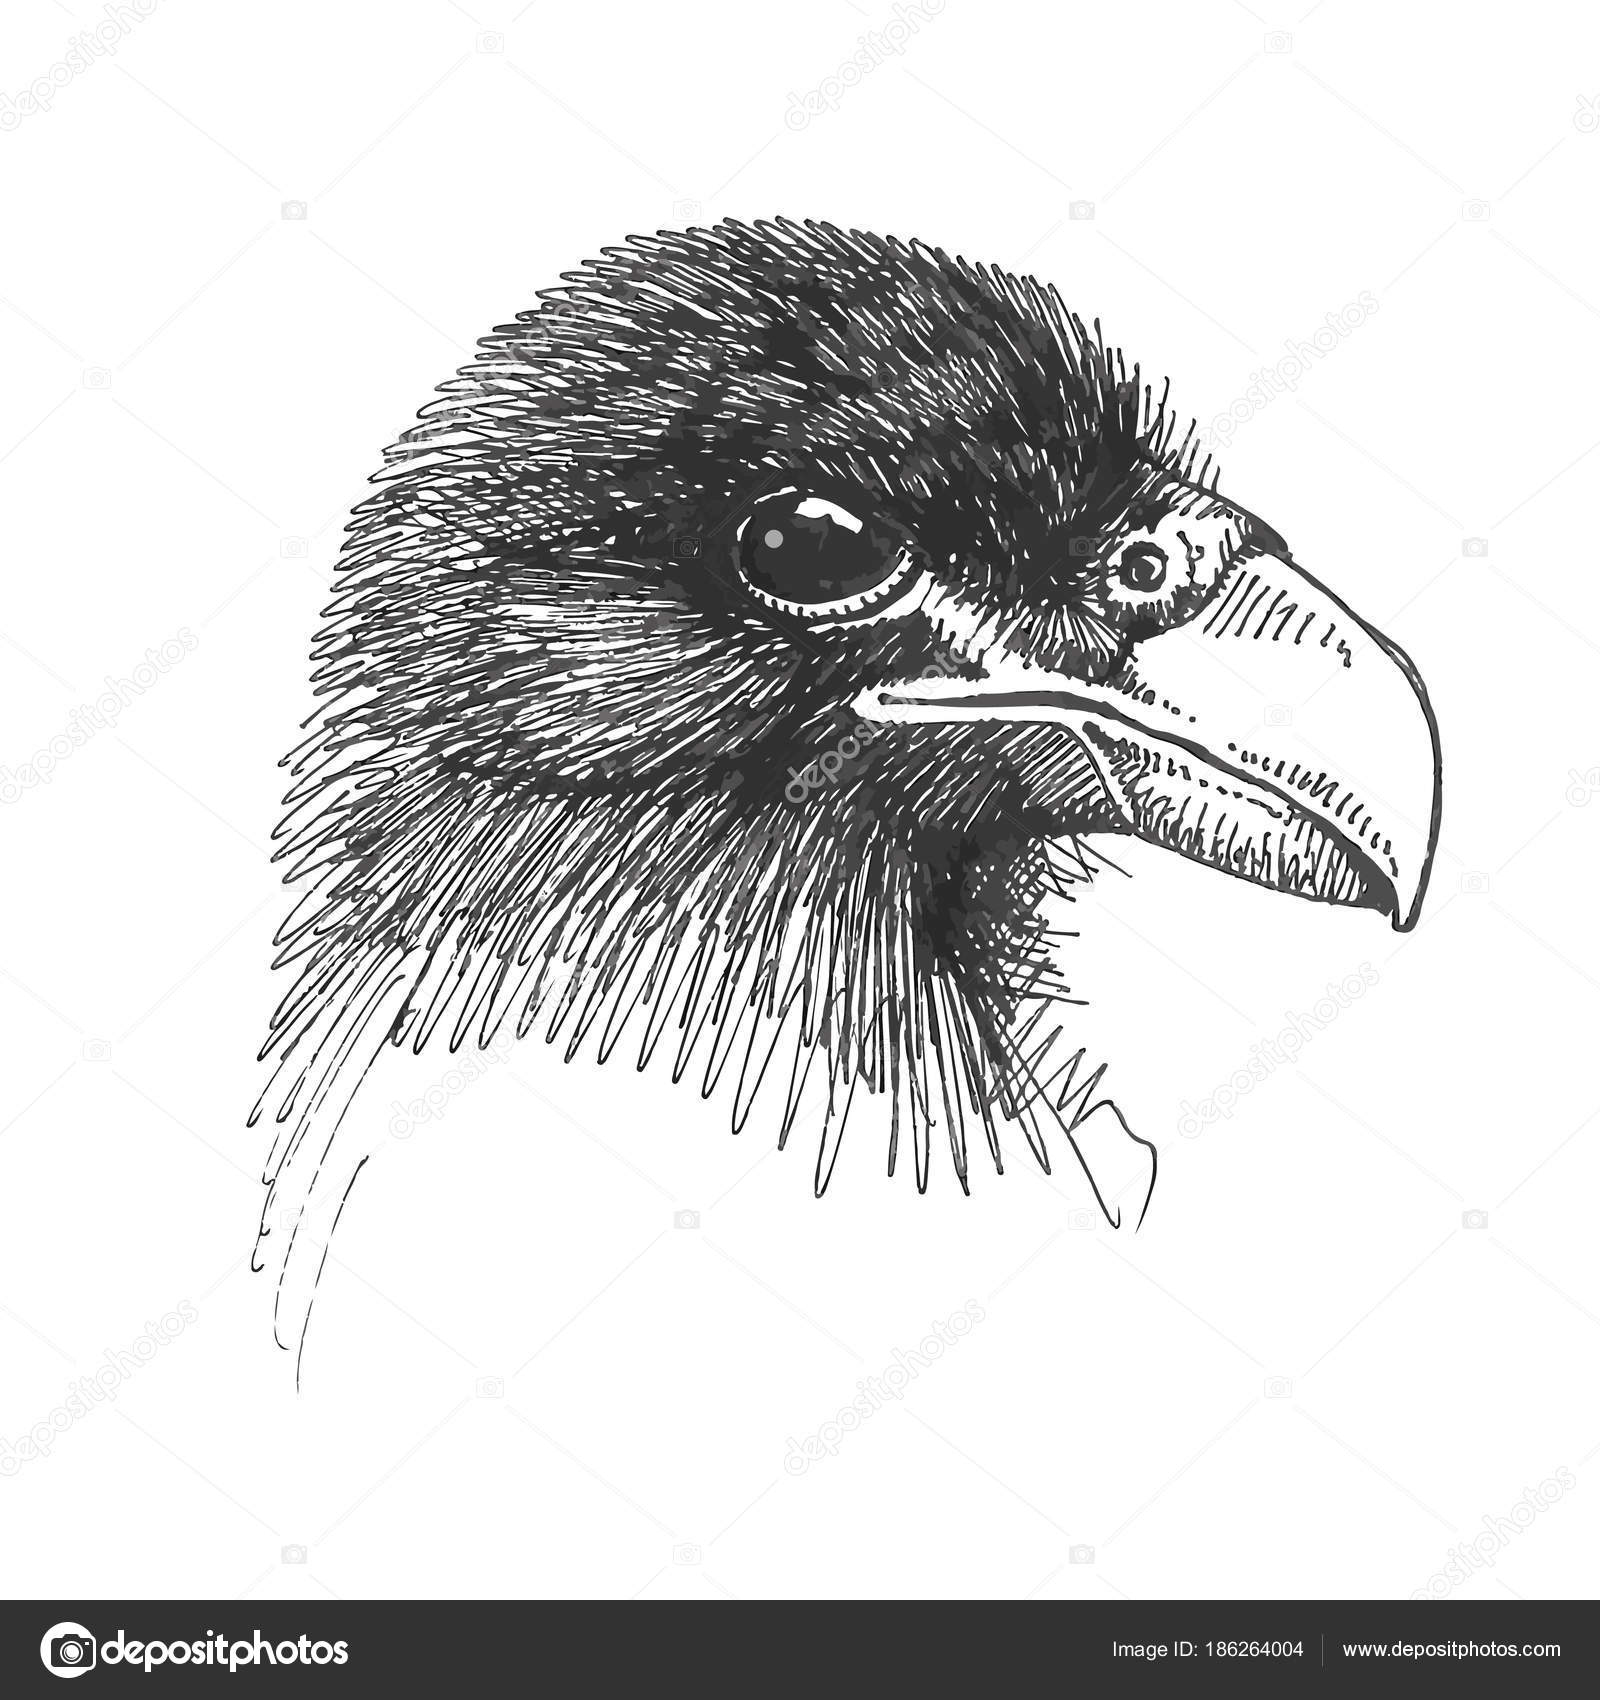 Eagle Head Drawing Vector Drawing Eagle Head Illustration Vector Drawing Eagle Head Eye Stock Vector C Kase1 186264004